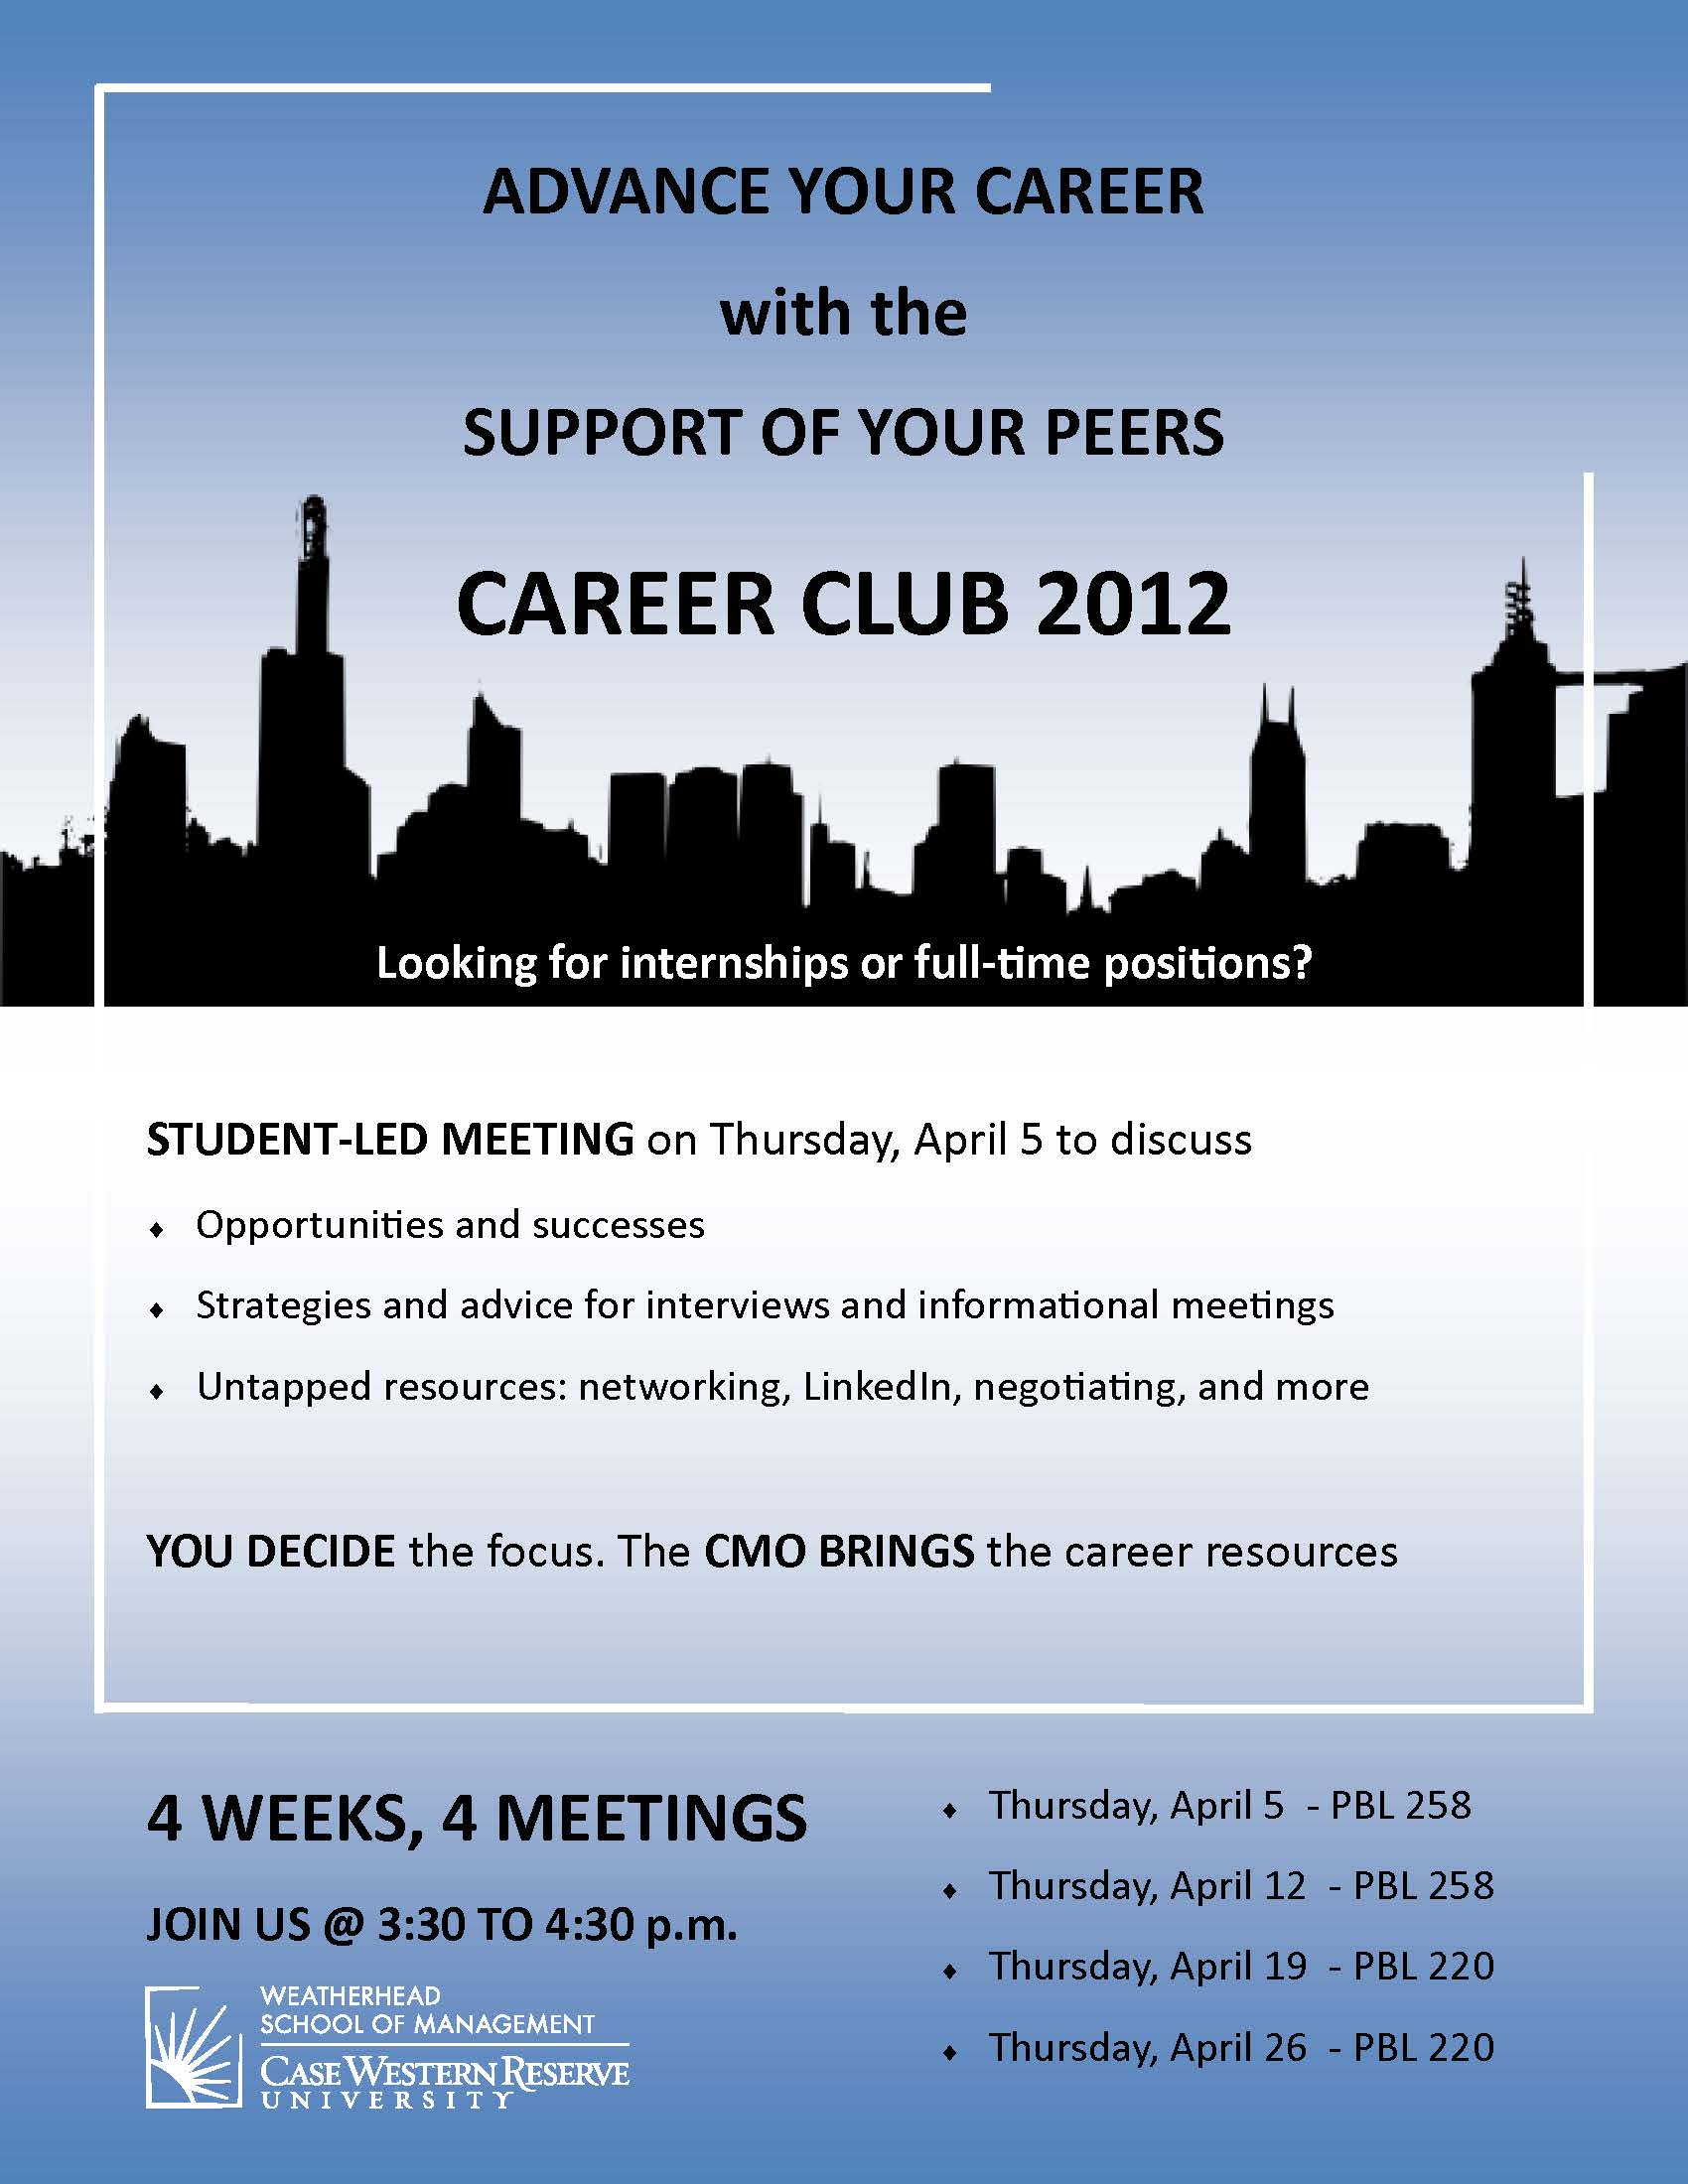 Career Club 2012